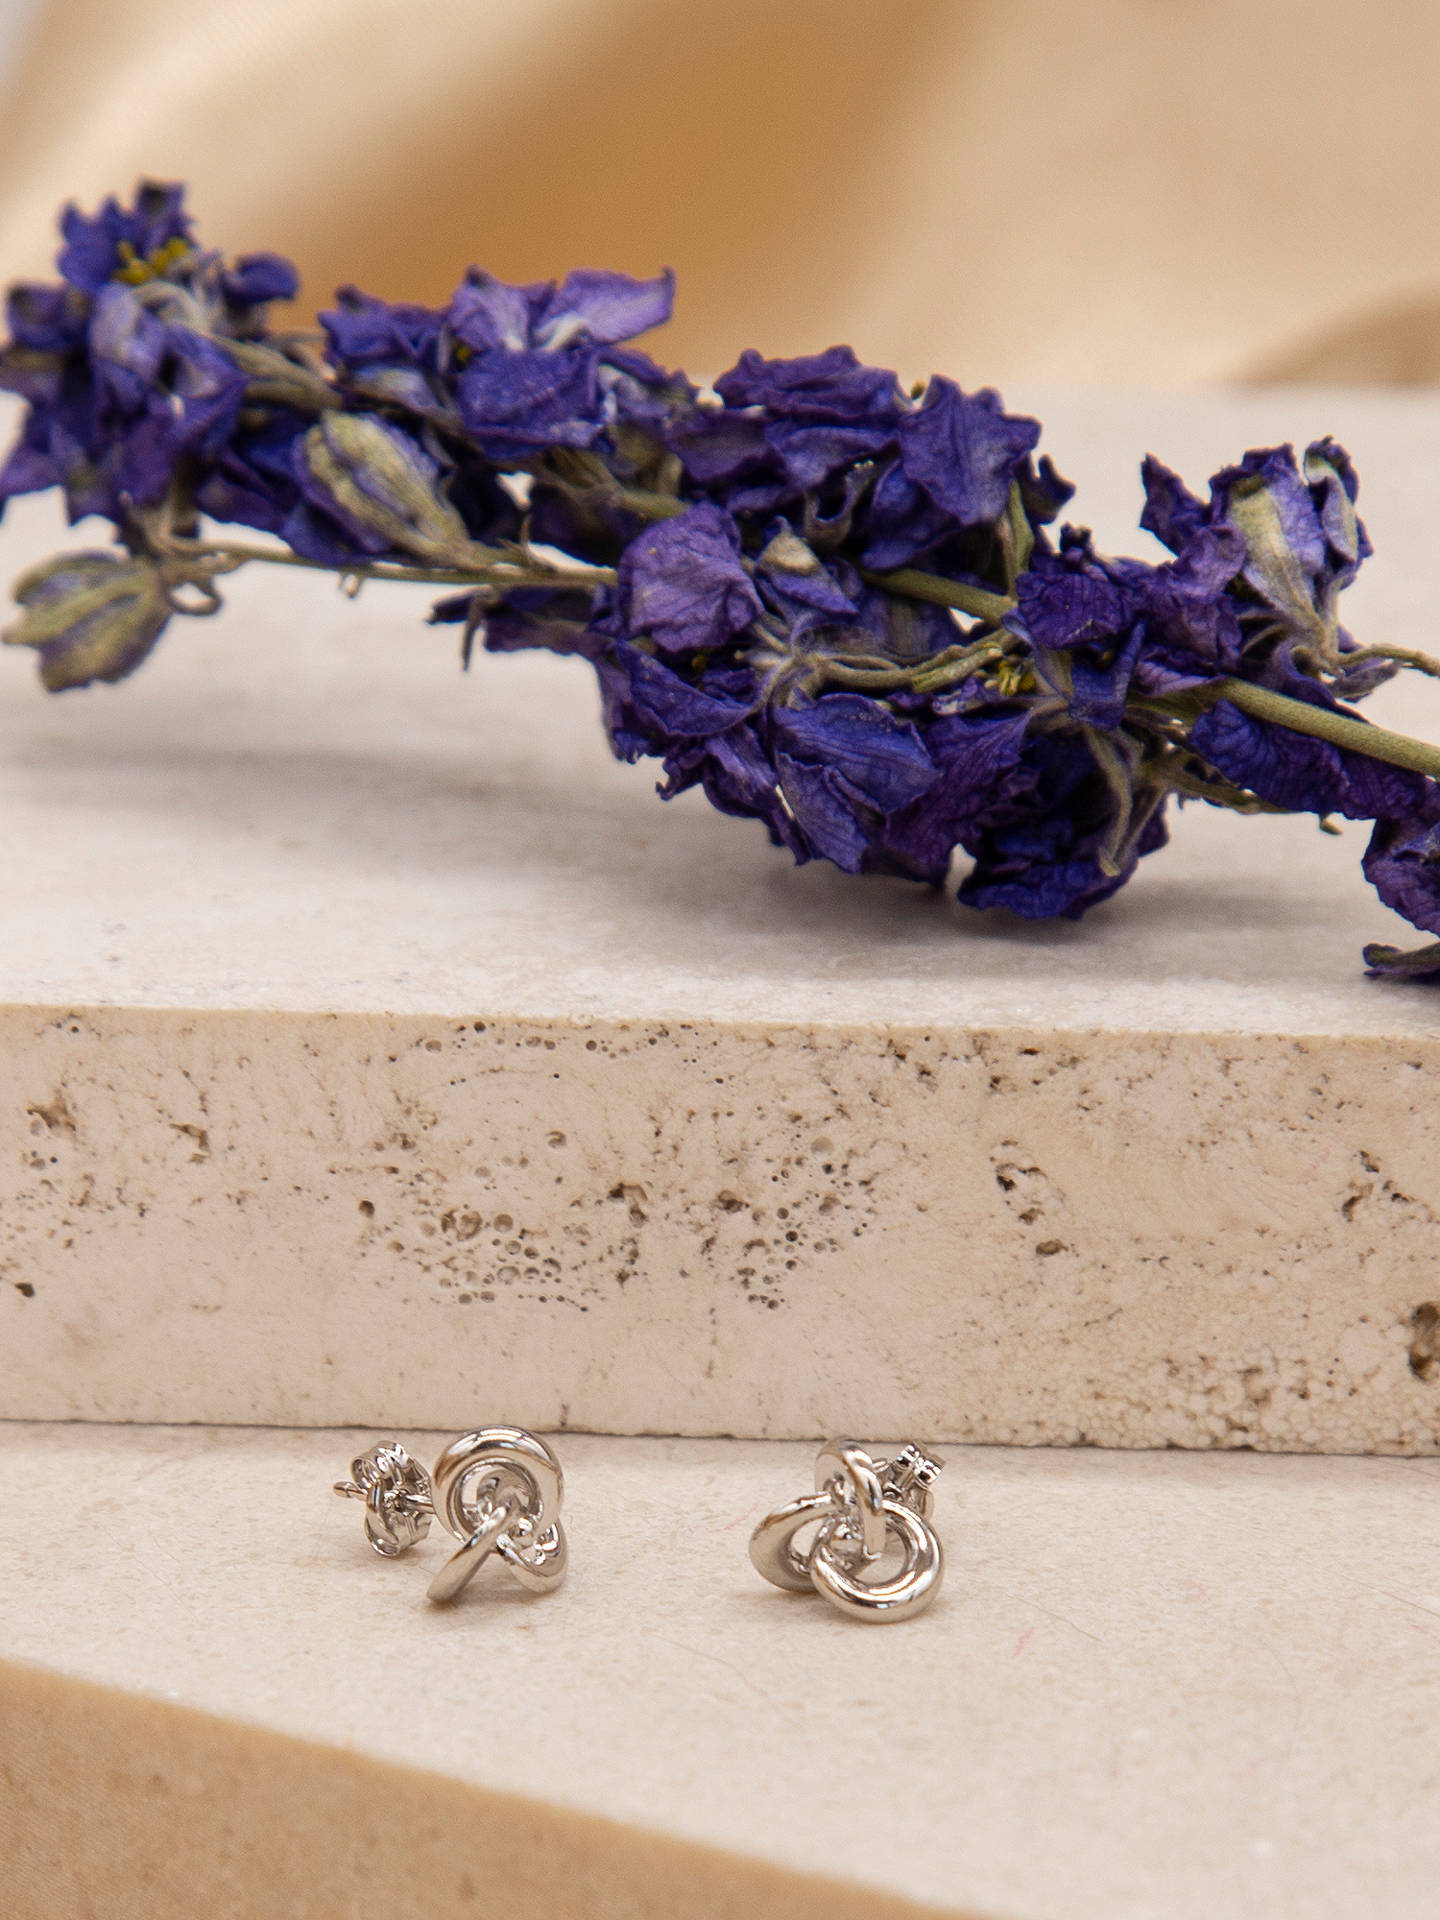 a6fbd0fee ... Buy IBB 9ct White Gold Knot Stud Earrings, White Online at  johnlewis.com ...